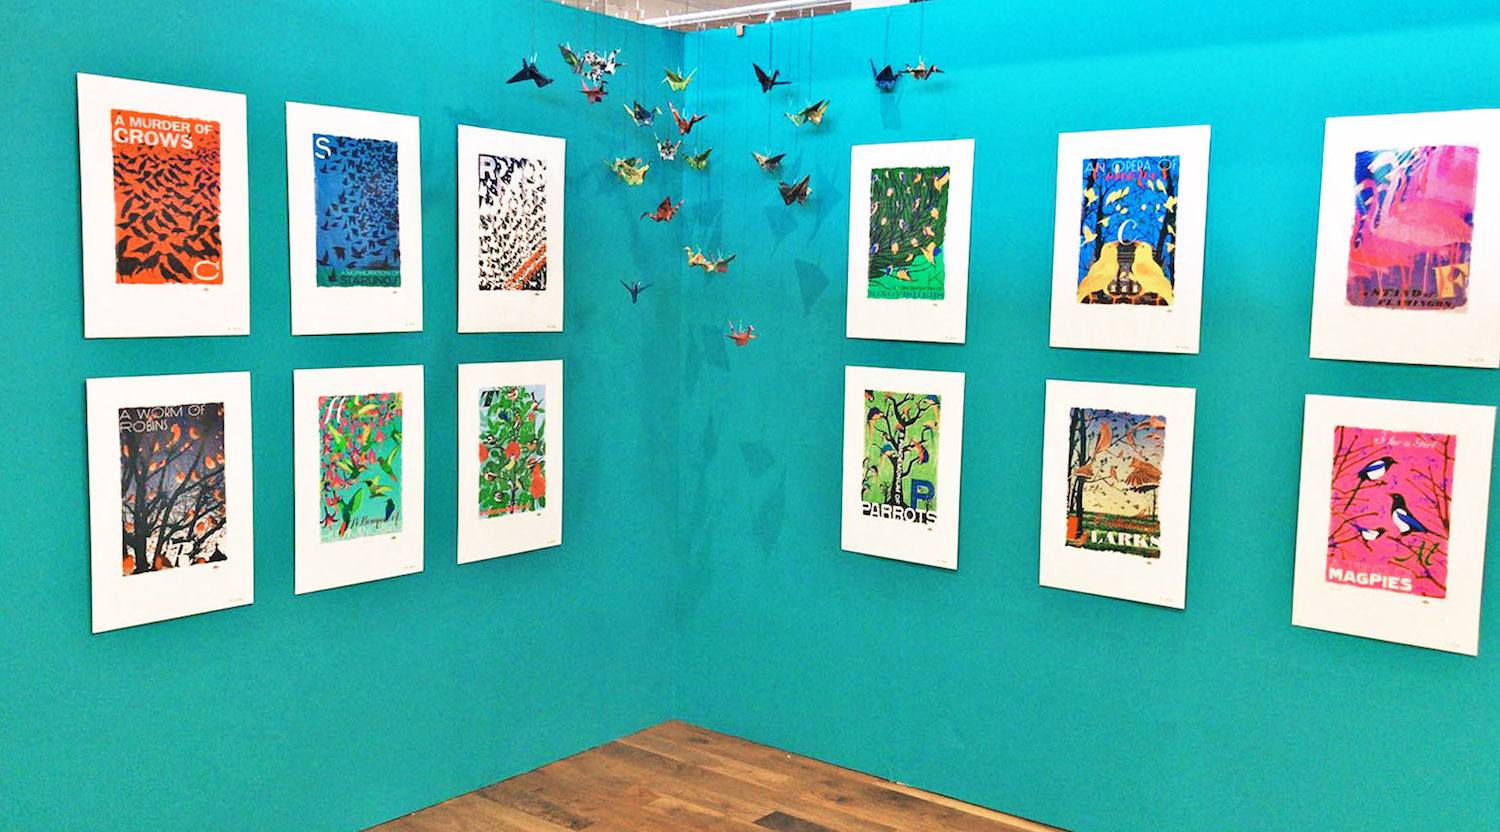 Origami birds hang from the Collective Nouns display.